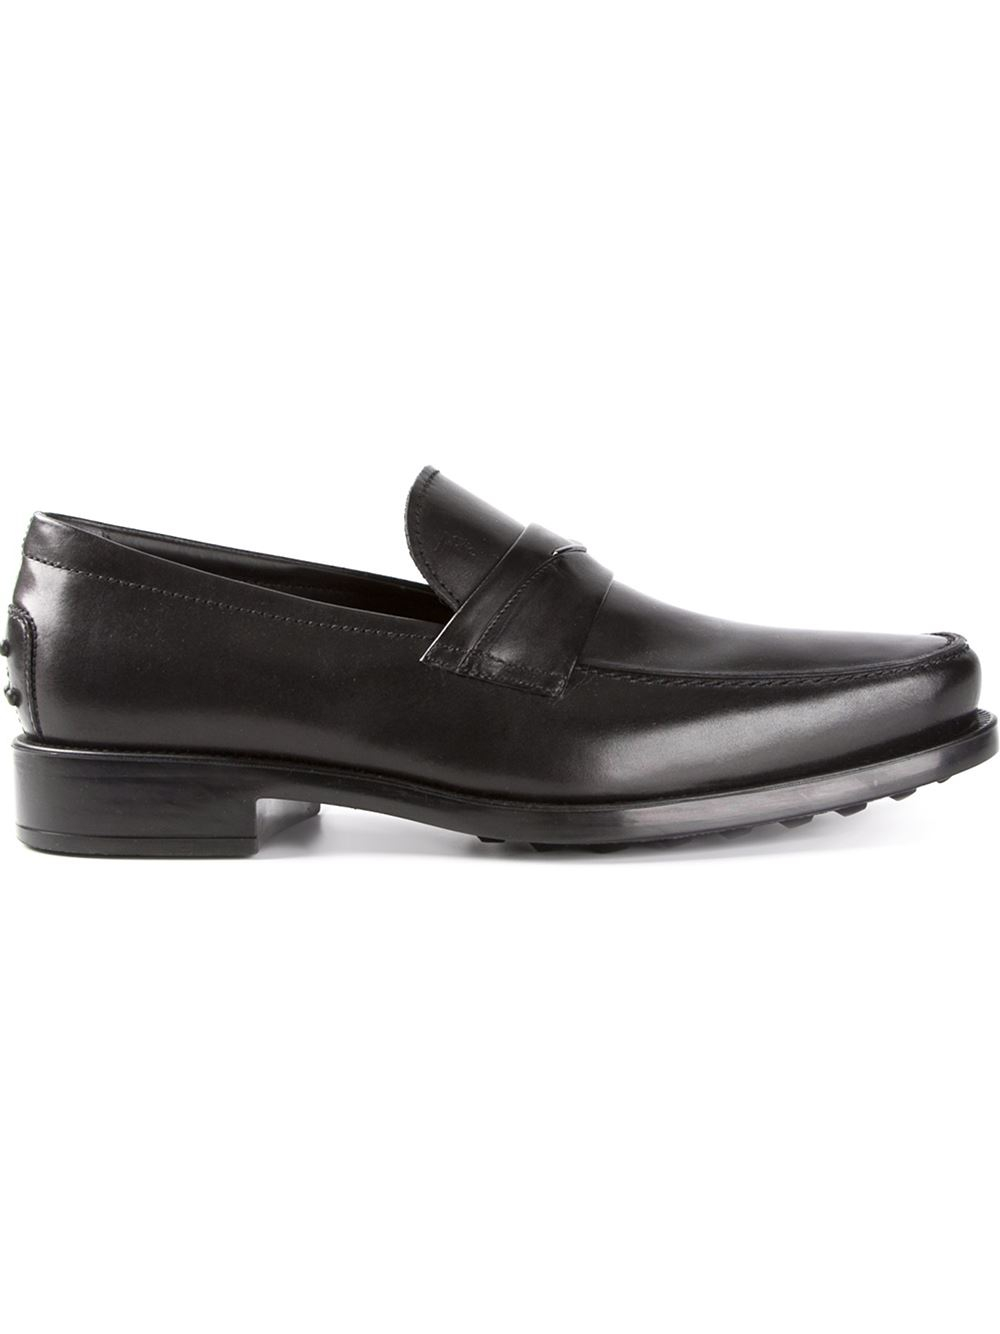 Tod's Penny Bar Loafers in Black for Men